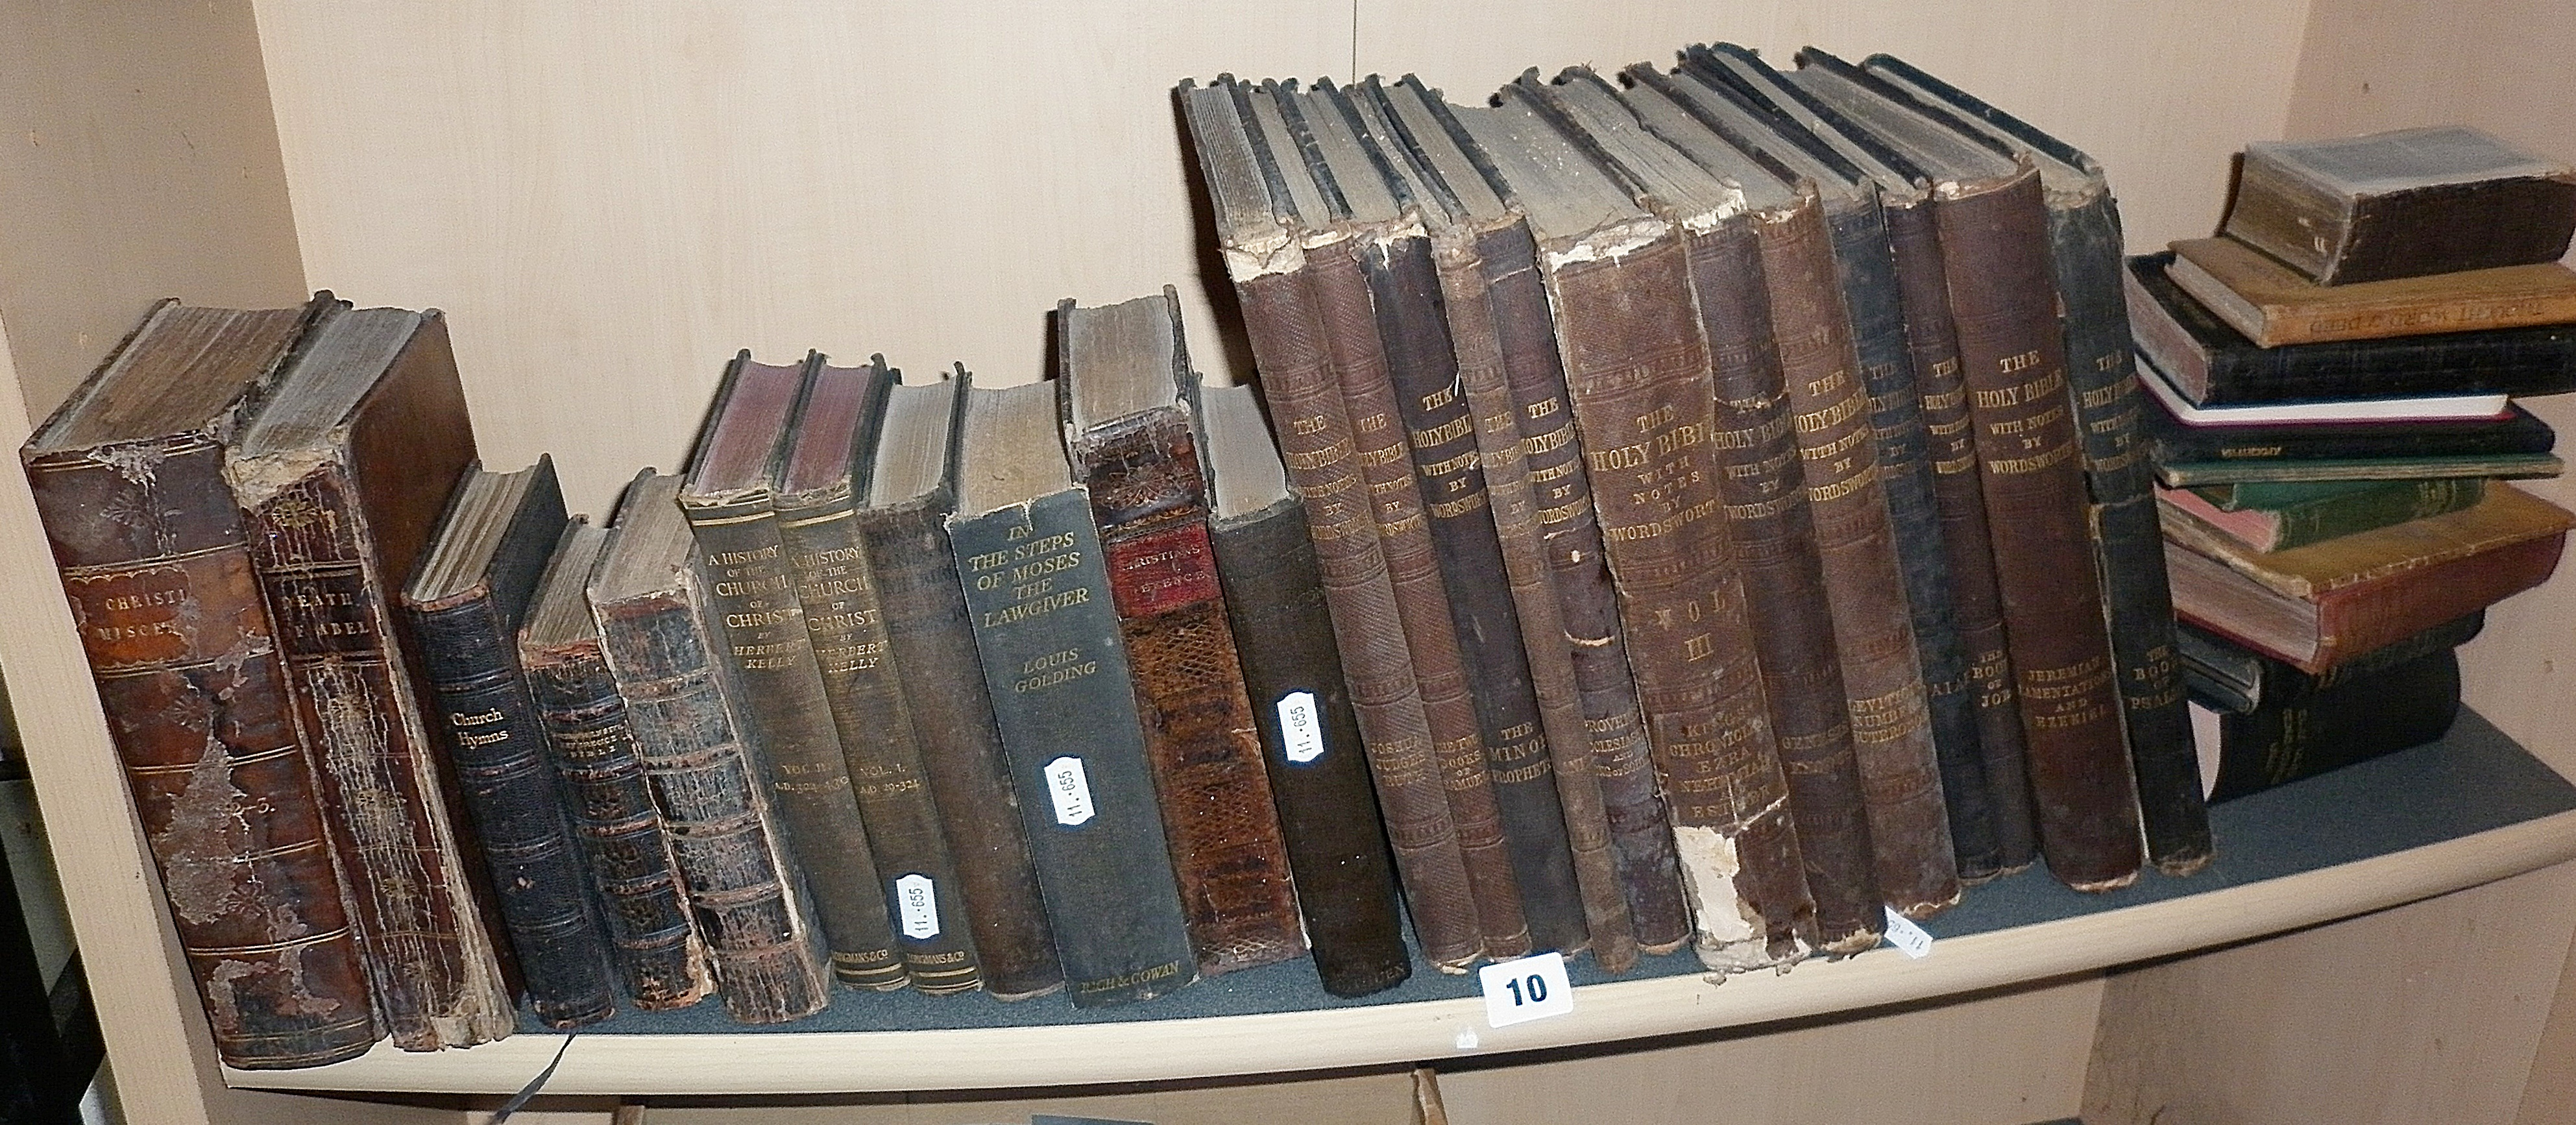 Twelve vols of 1876 'The Holy Bible' with notes by Wordsworth and assorted similar religious books